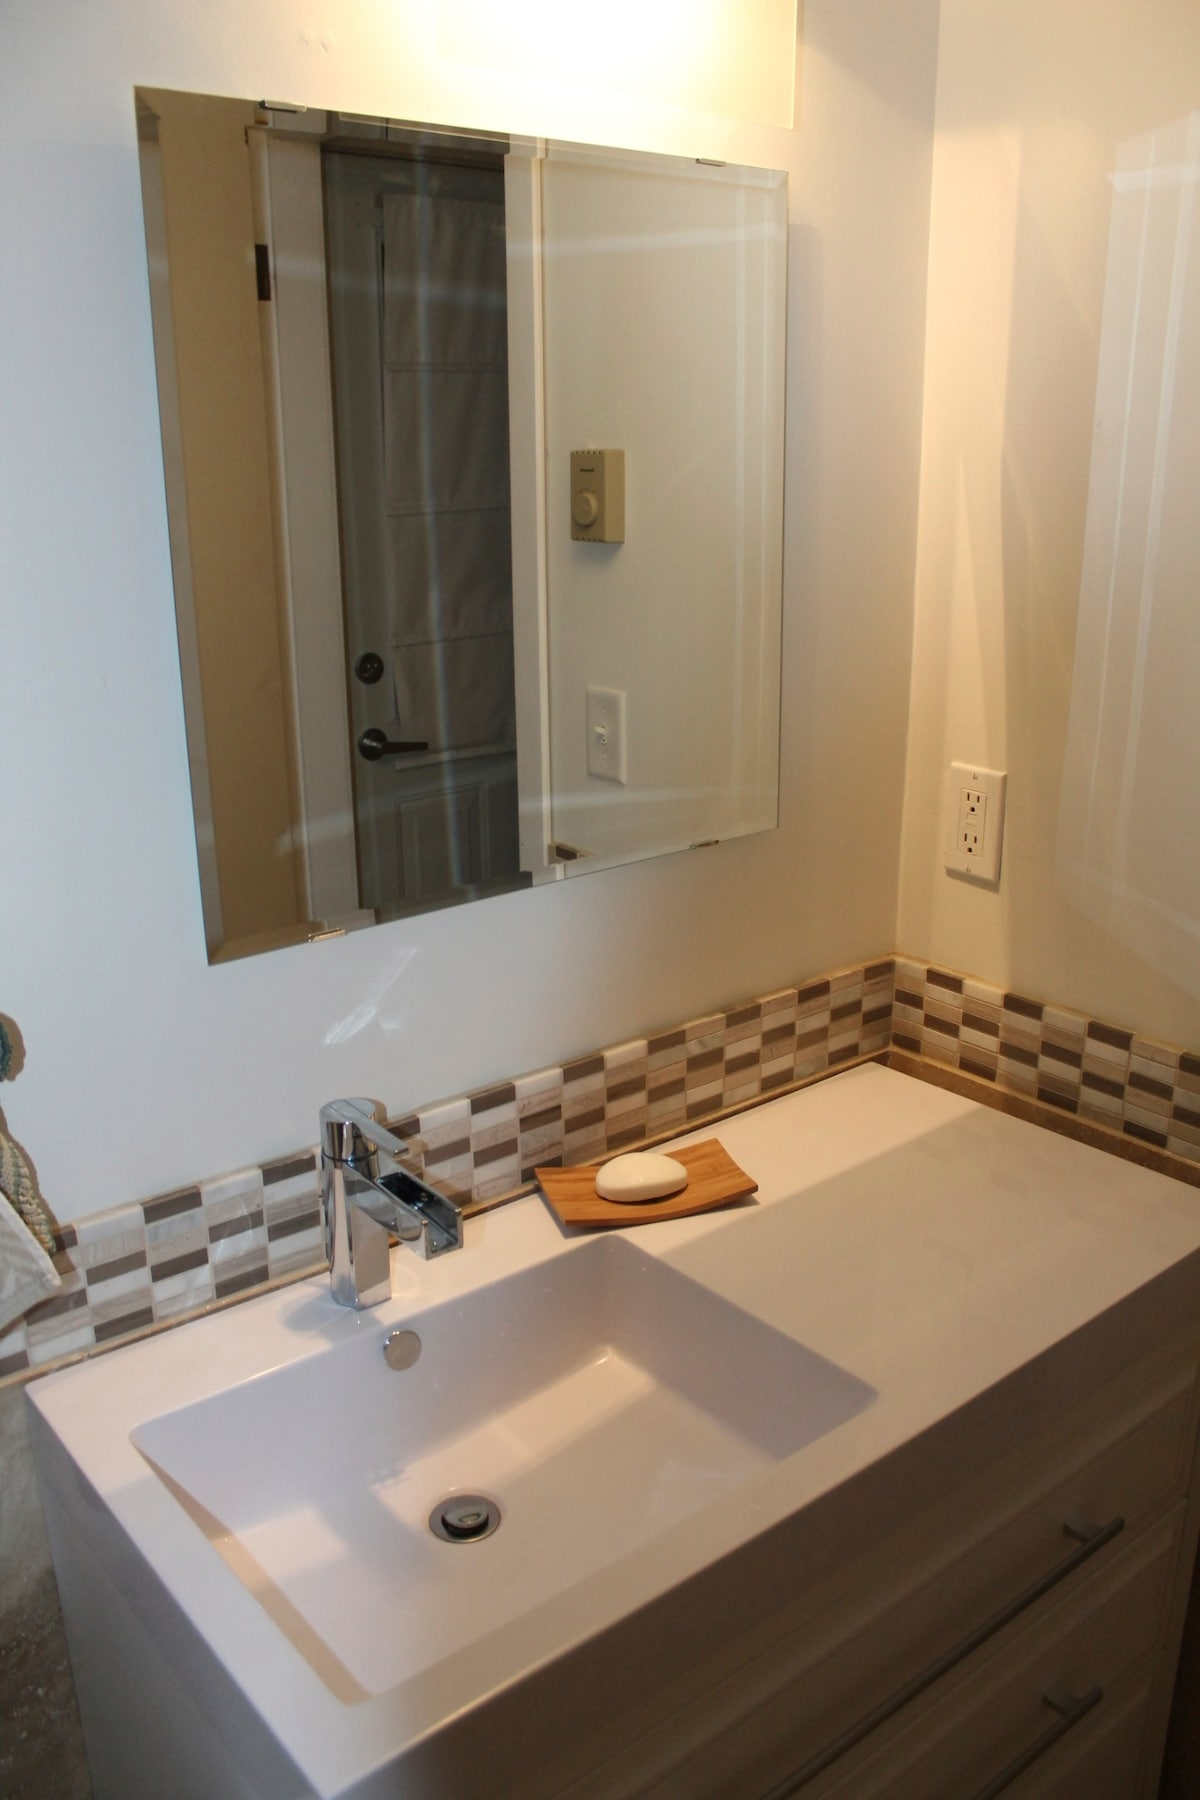 Newly remodelled bathroom, there is also a full shower